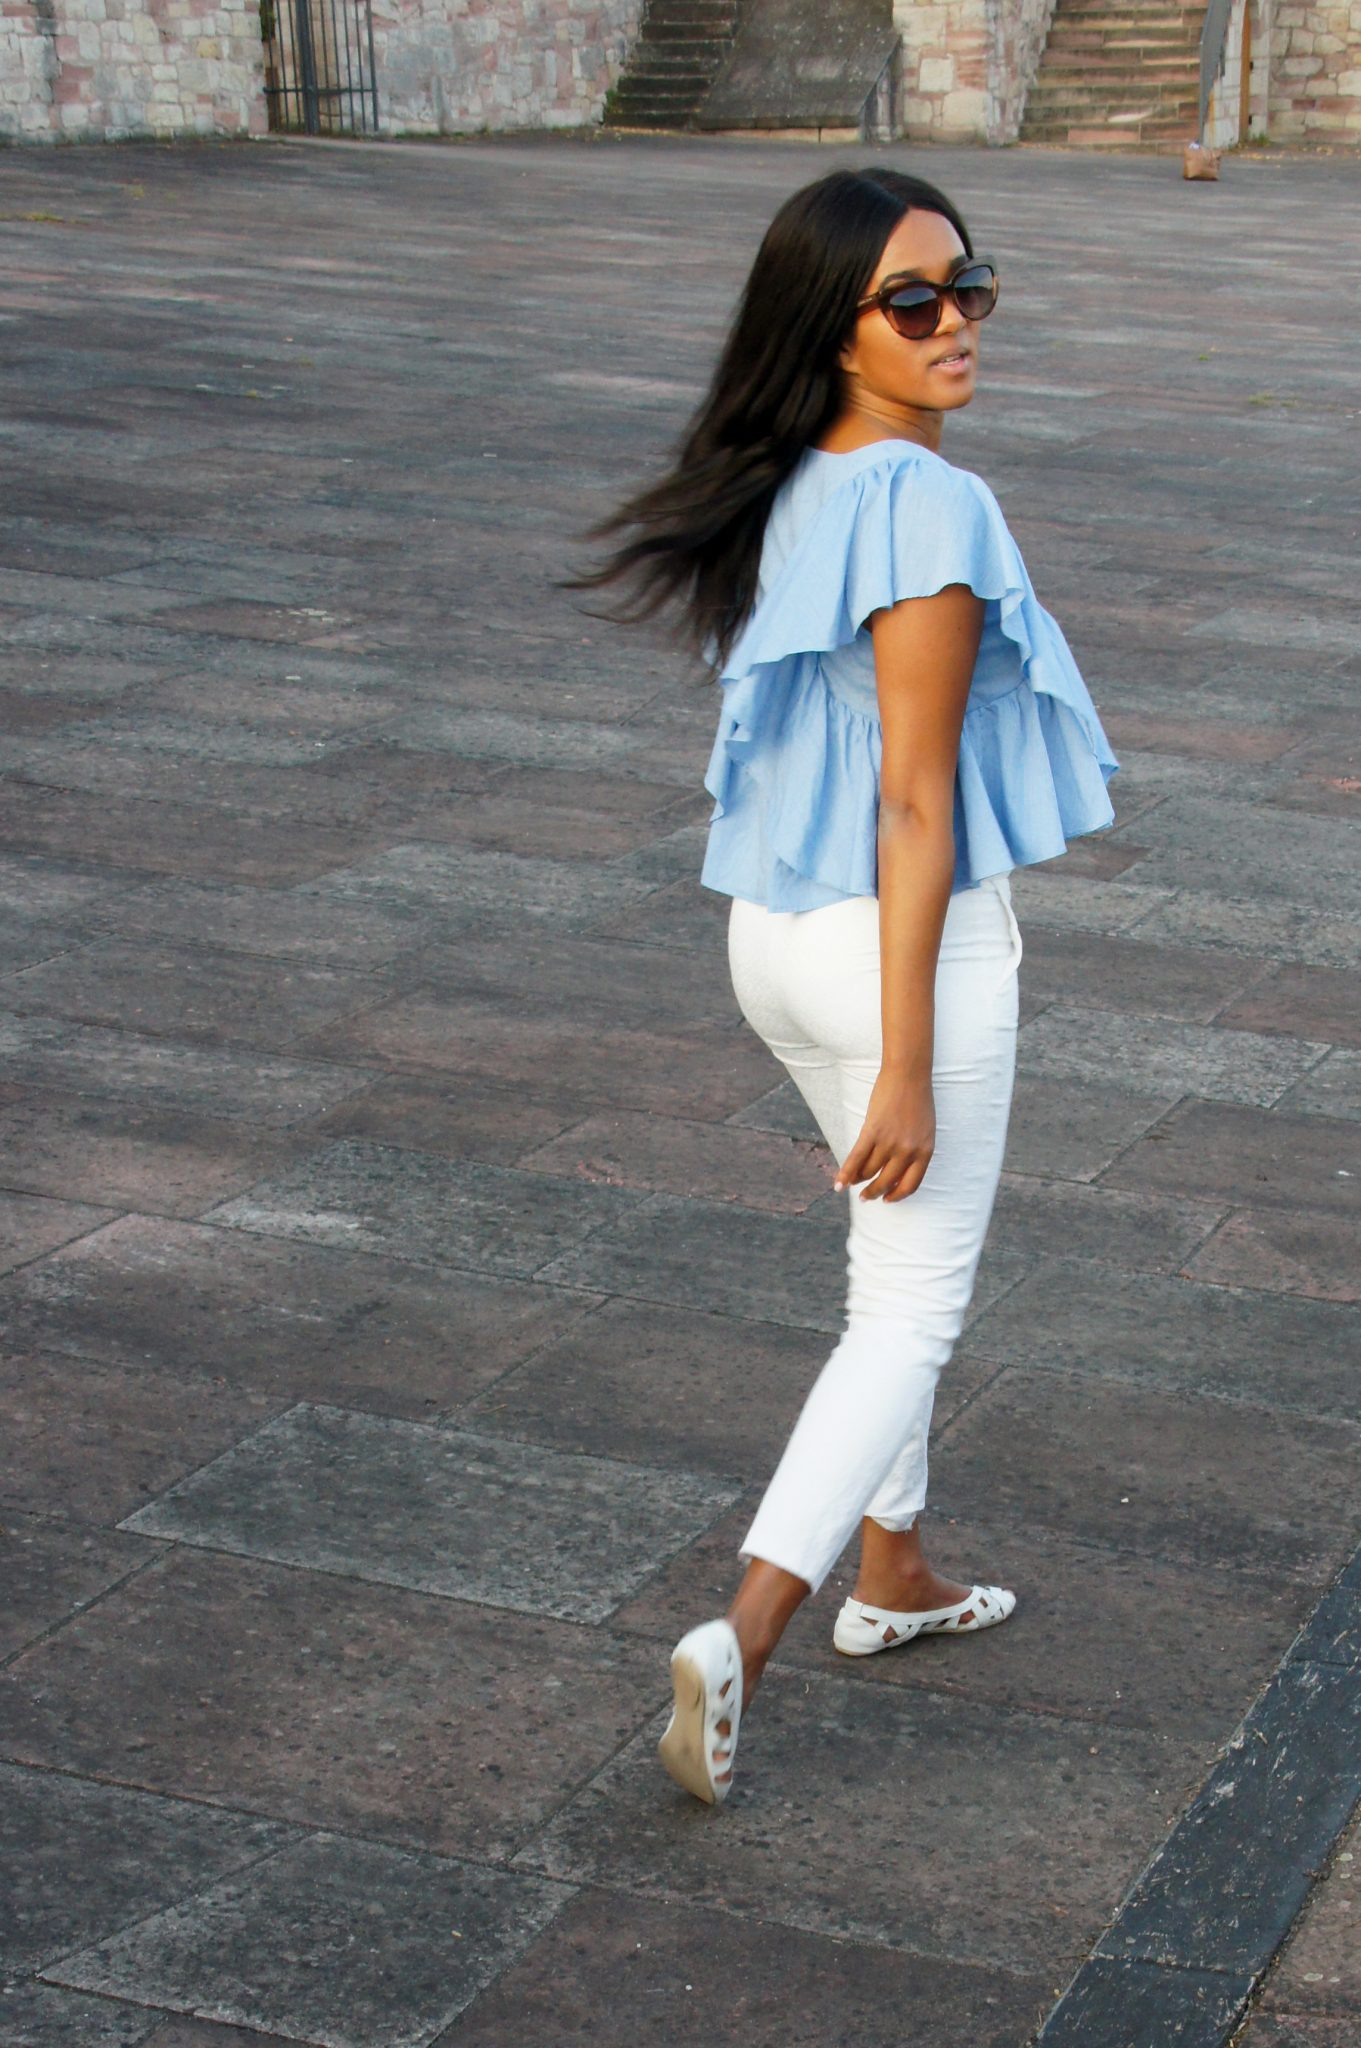 Wearing a blue and white outfit in summer